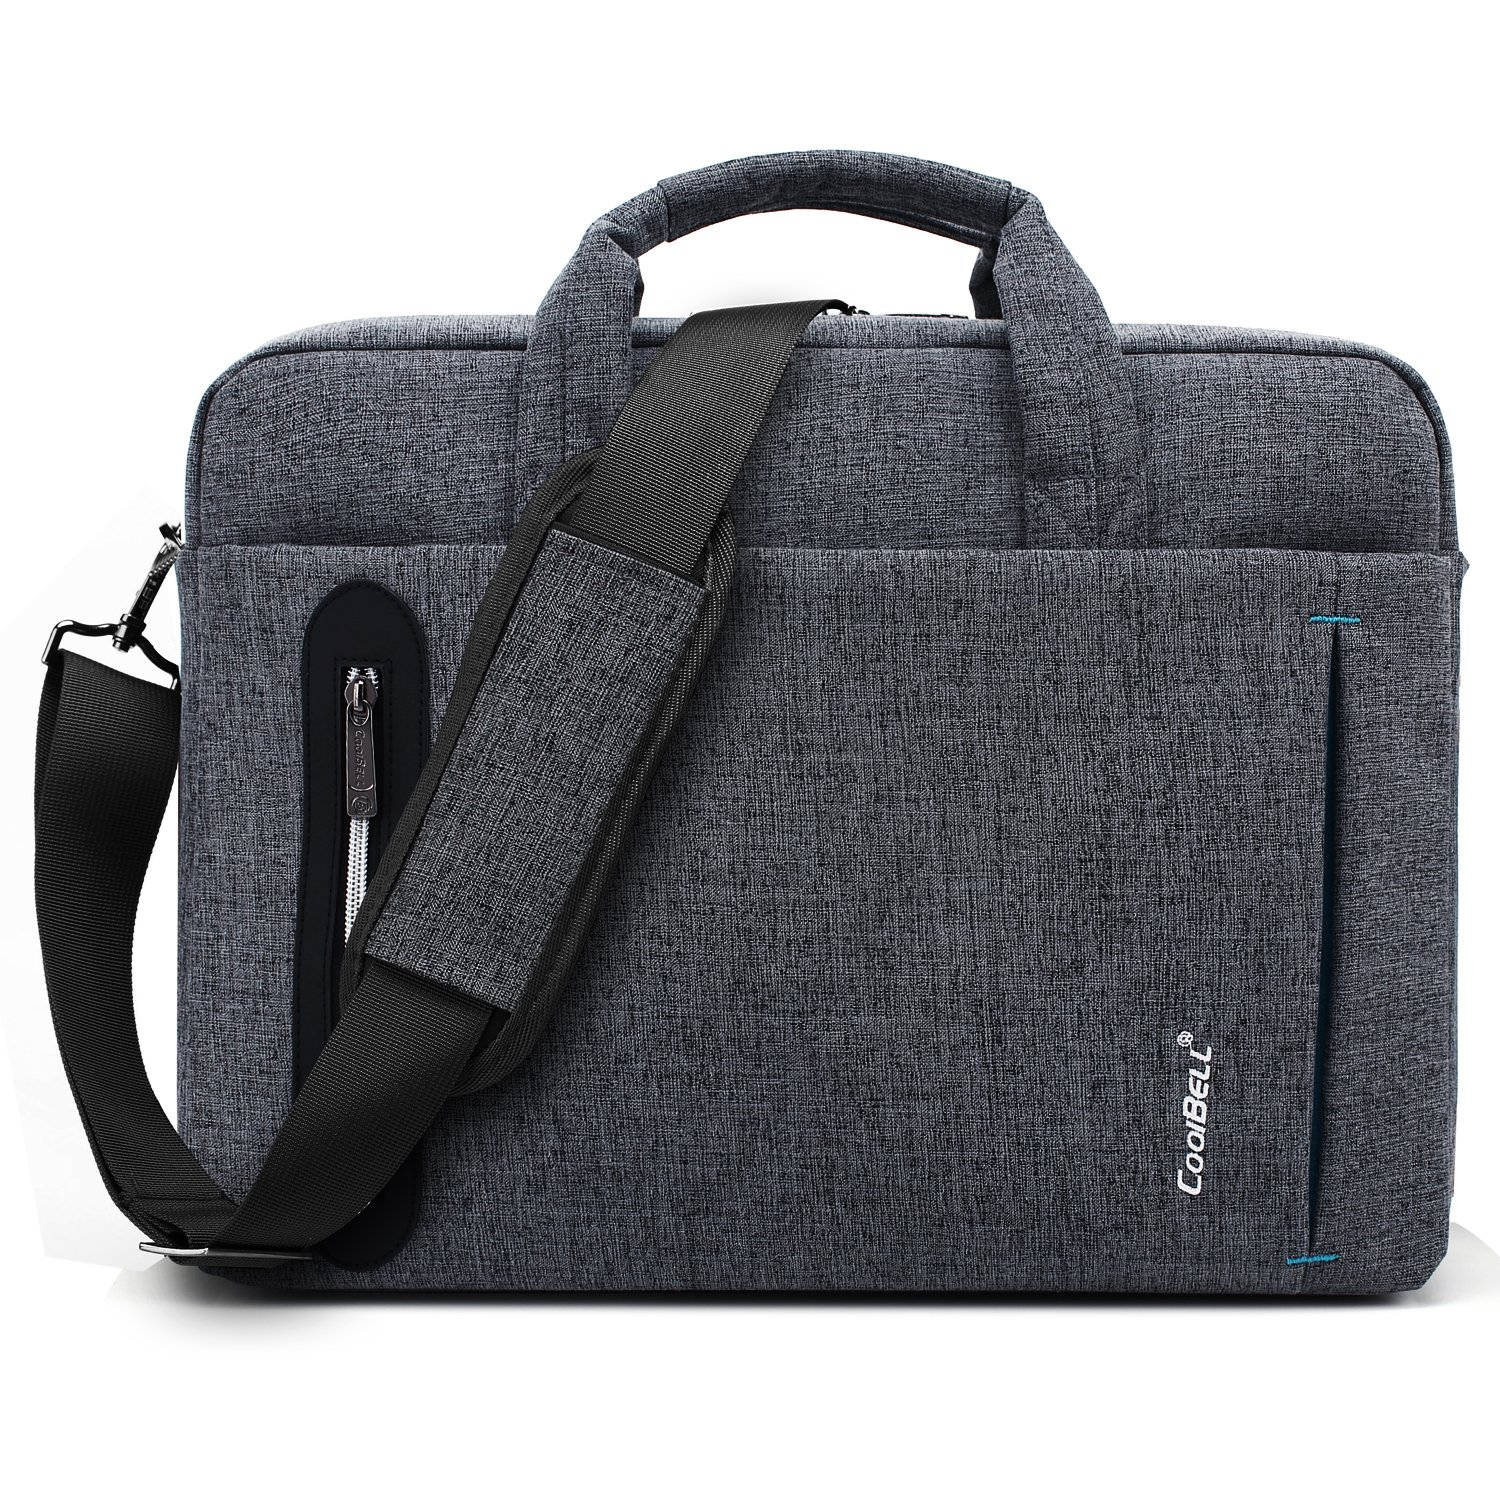 Laptop Messenger Bags | Amazon.com